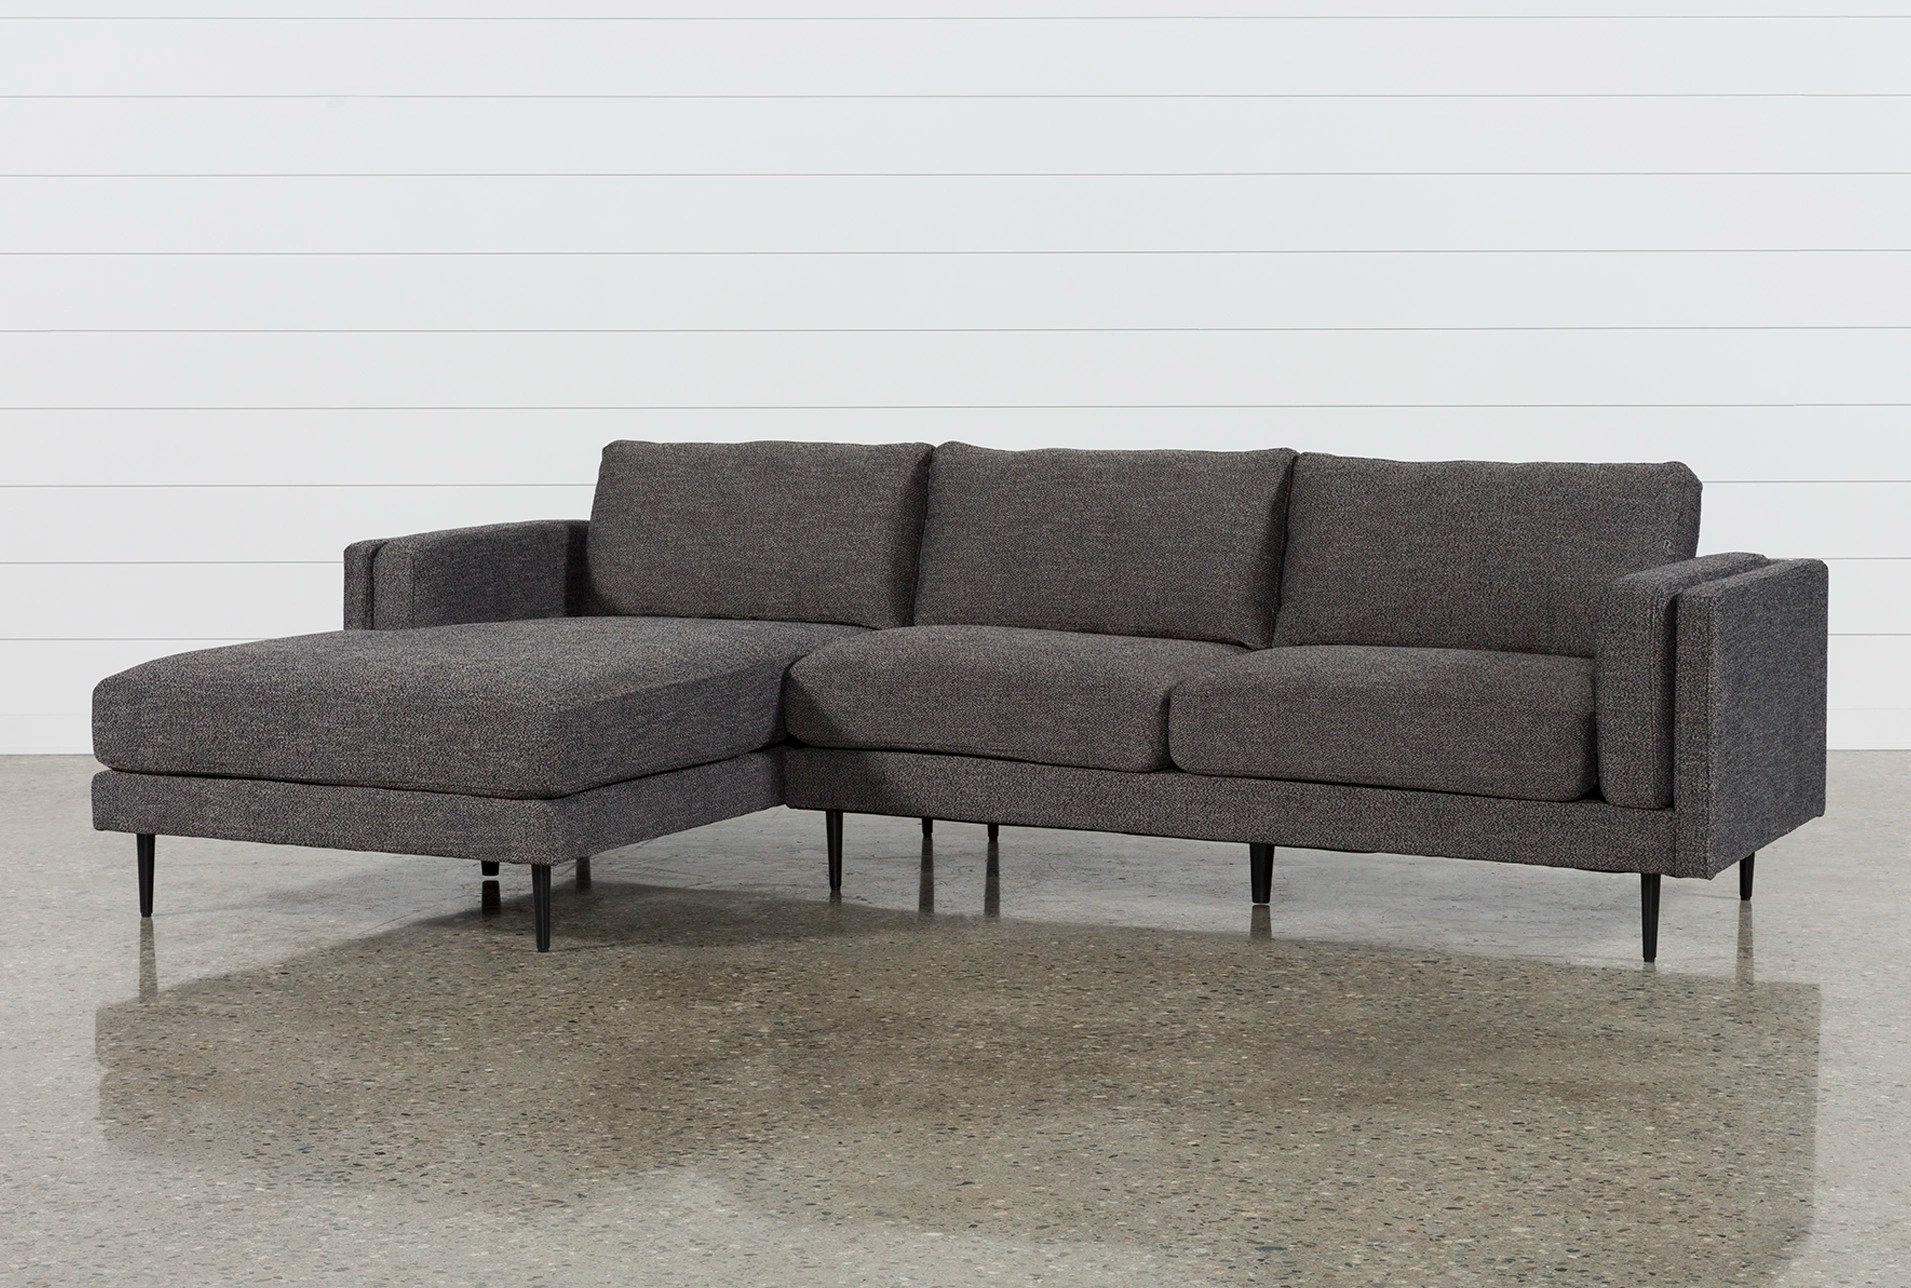 alessandro leather power motion sofa reviews mission table target sectionals sectional sofas under 700 living spaces aquarius dark grey 2 piece w laf chaise